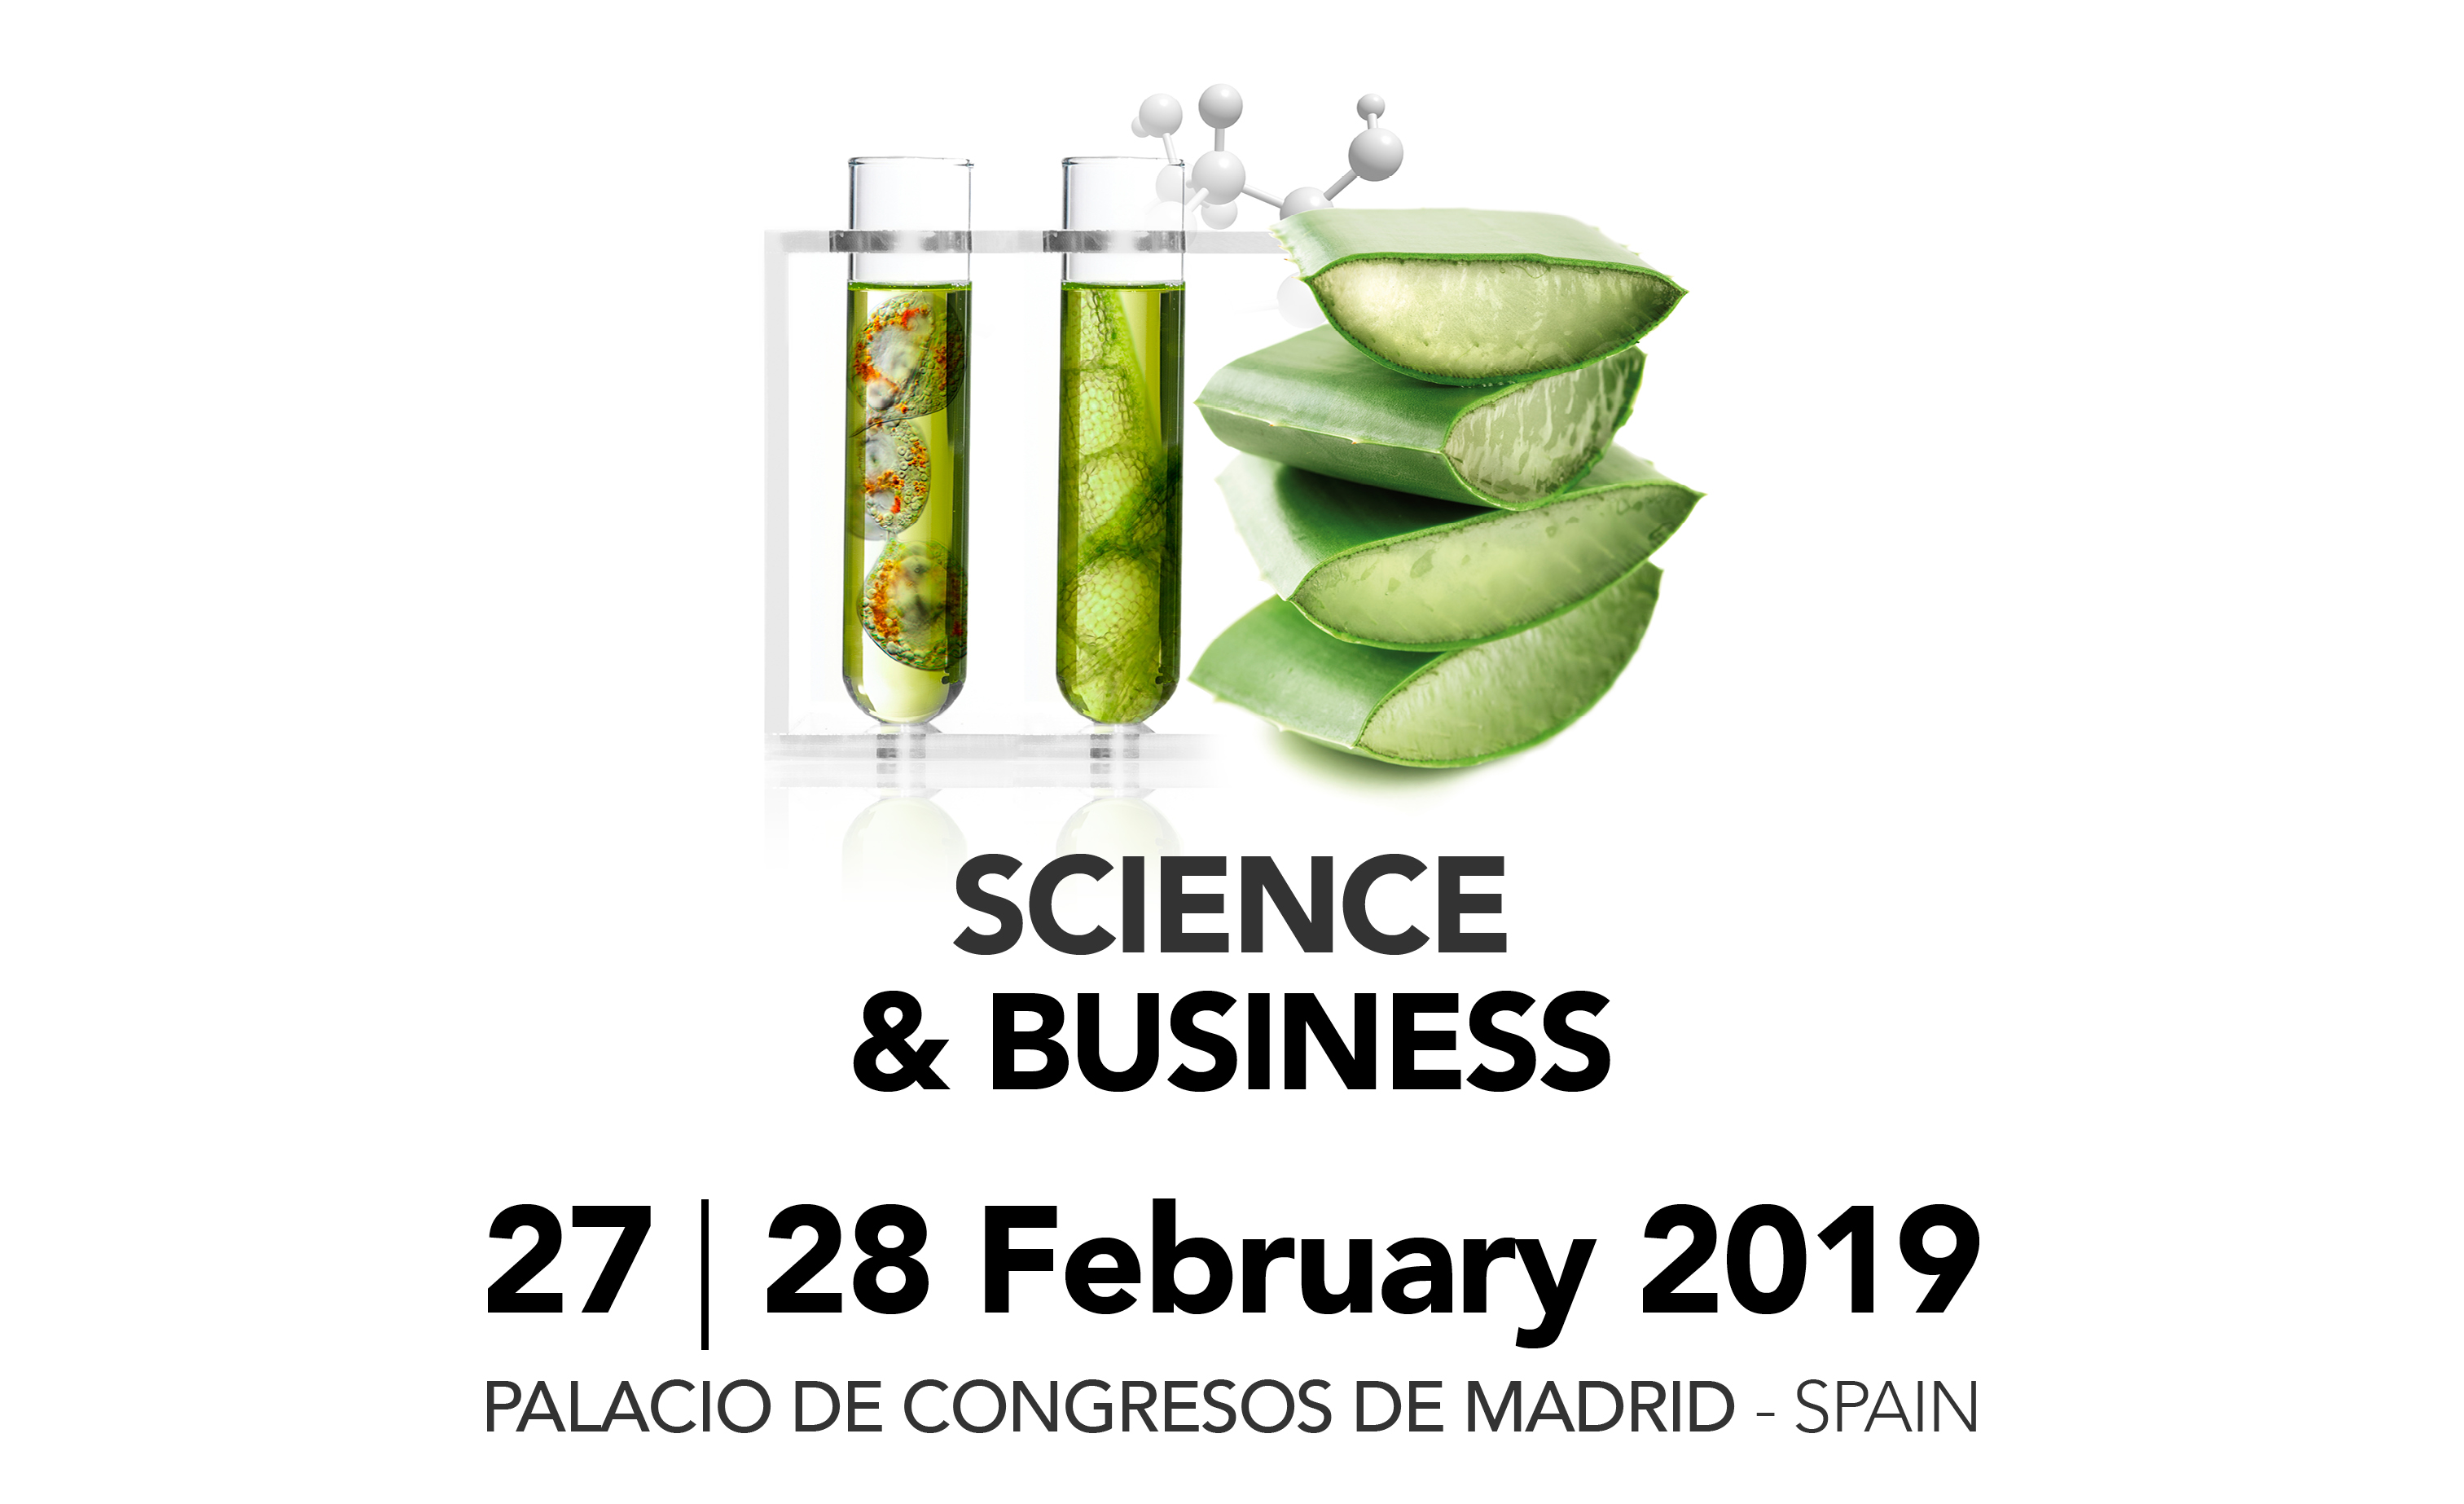 Nutraceuticals Europe – Summit & Expo launches its third edition to be held on the 27 and 28 of February 2019 in Madrid